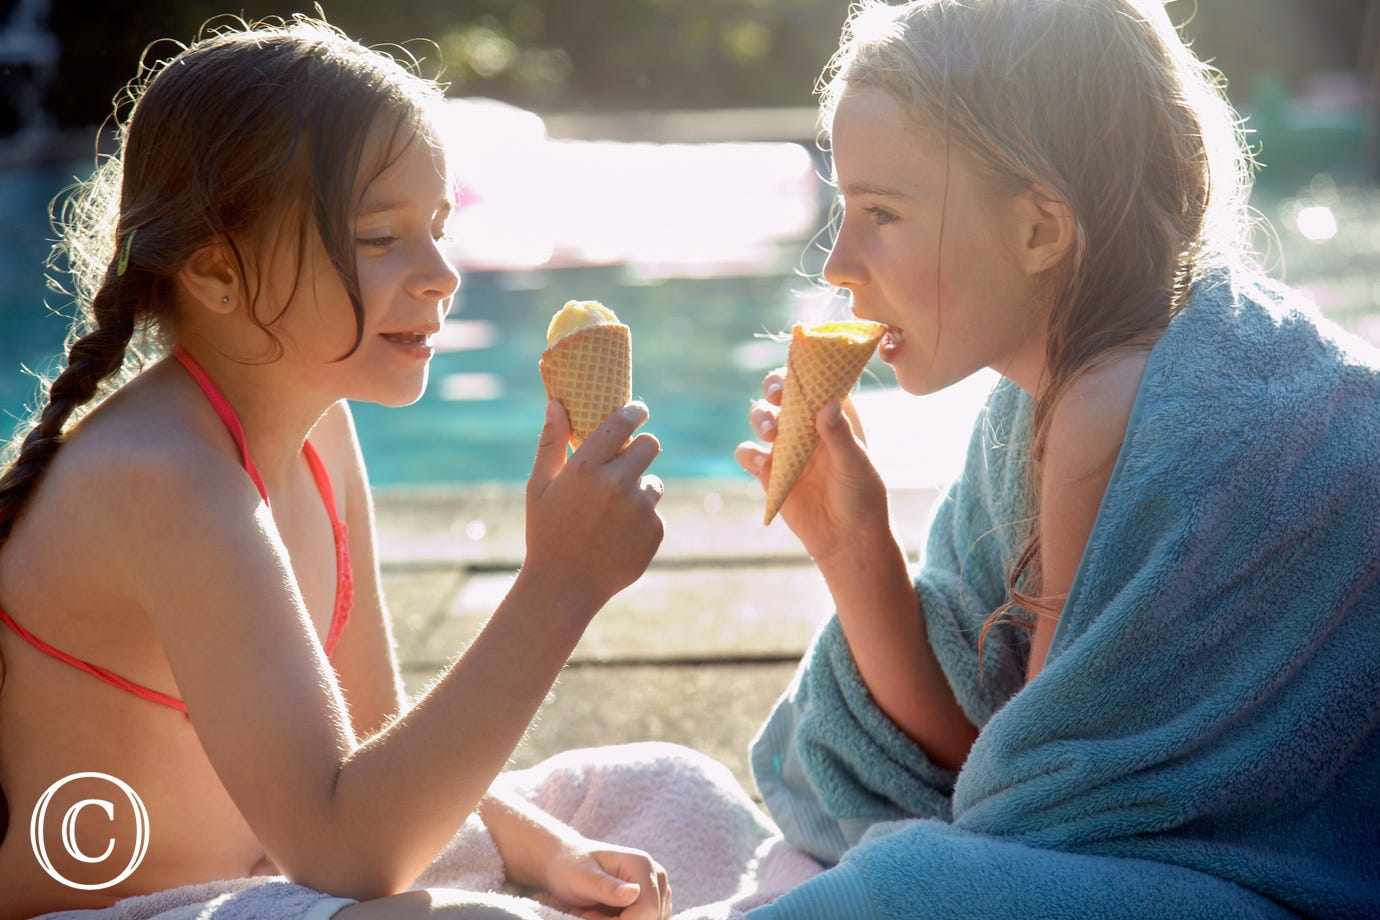 Girls eating ice creams by the side of the pool.